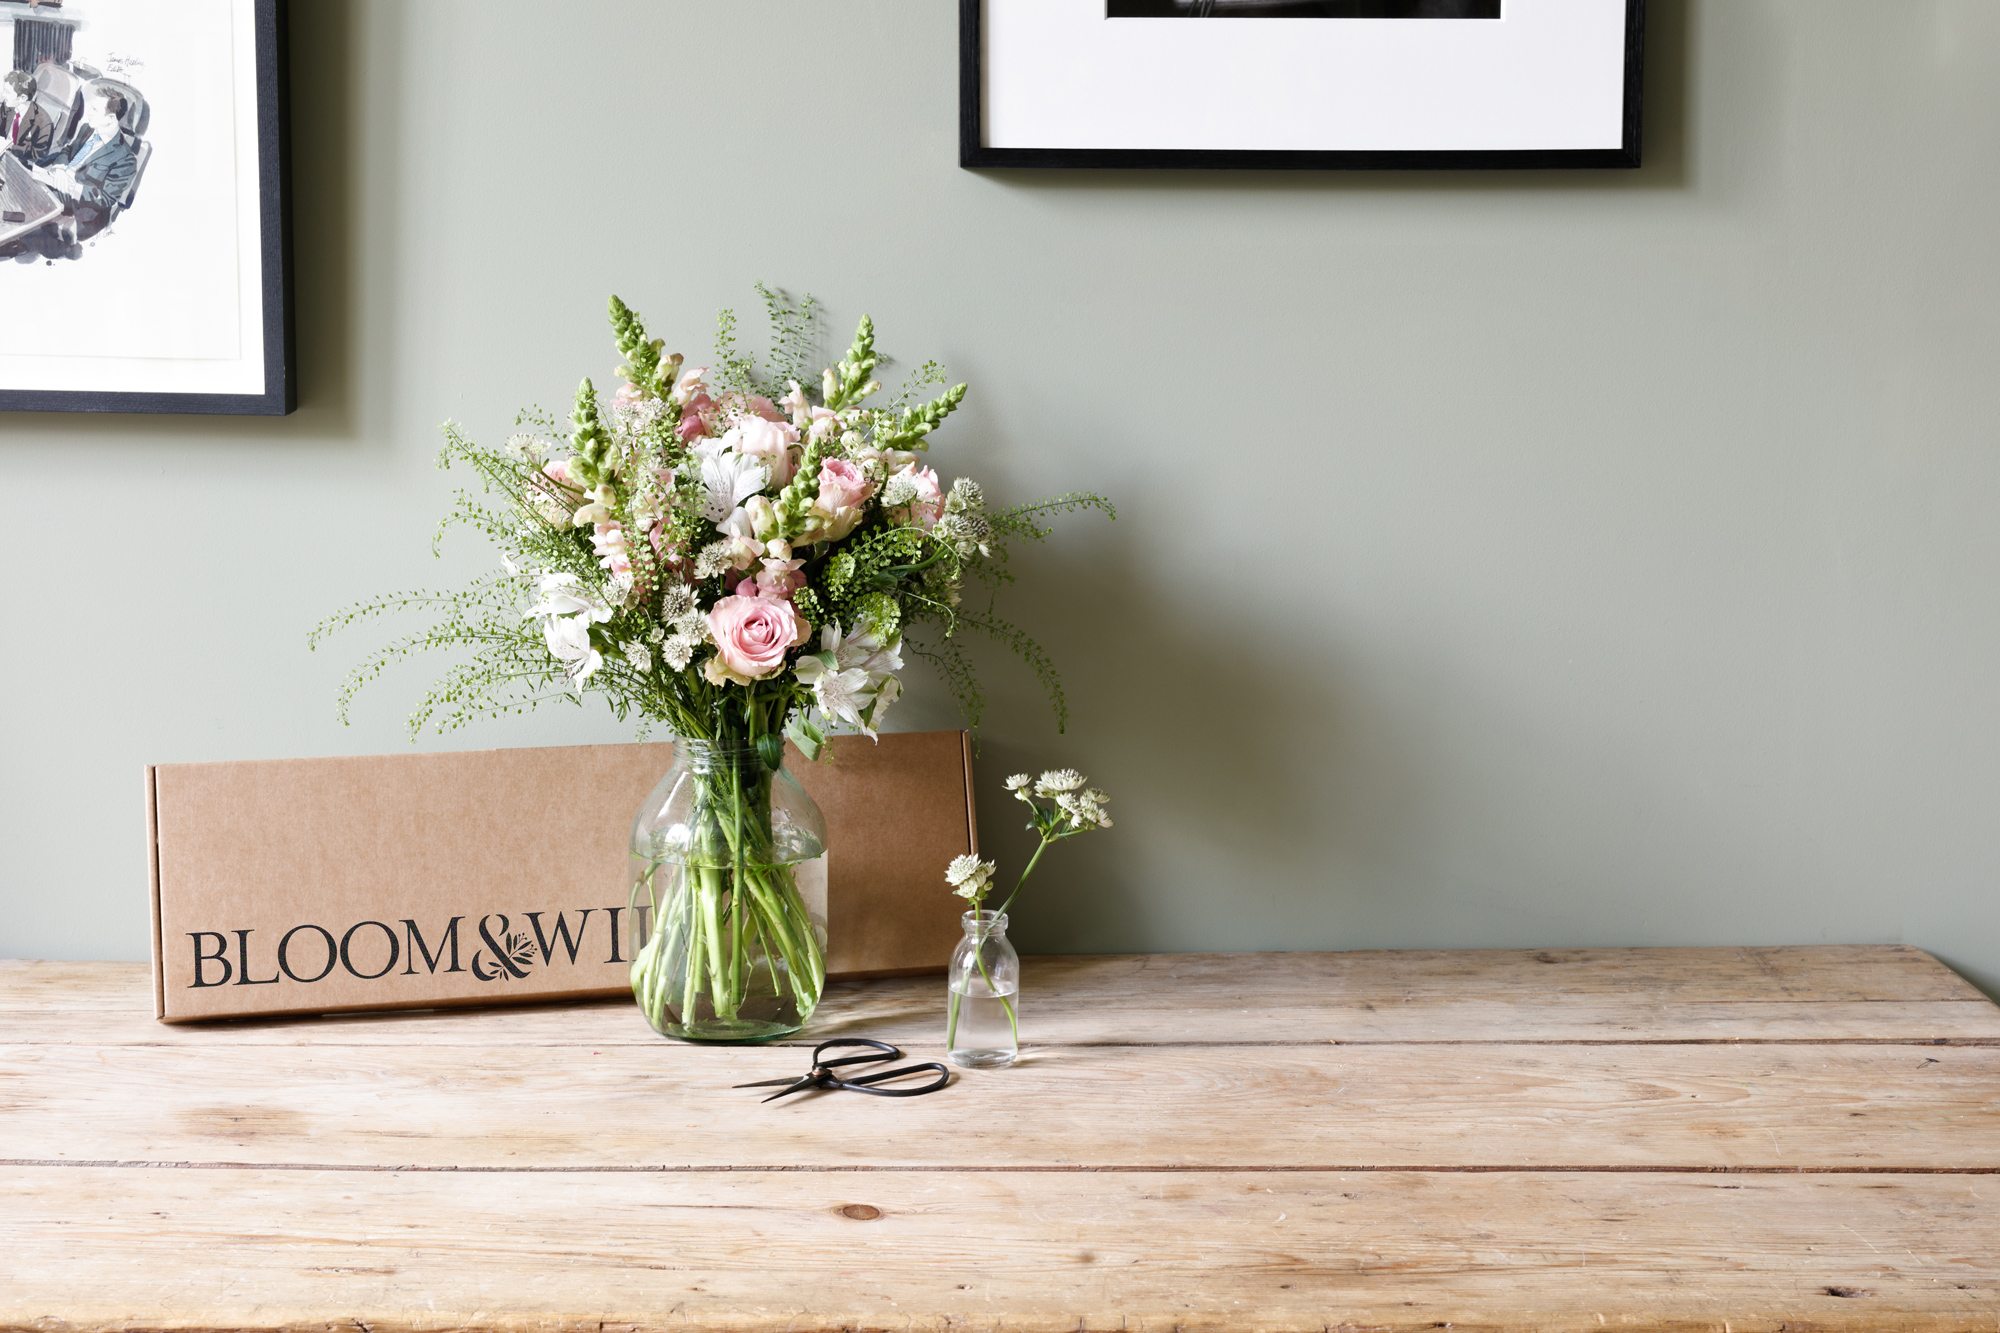 Win a Bloom and Wild bouquet